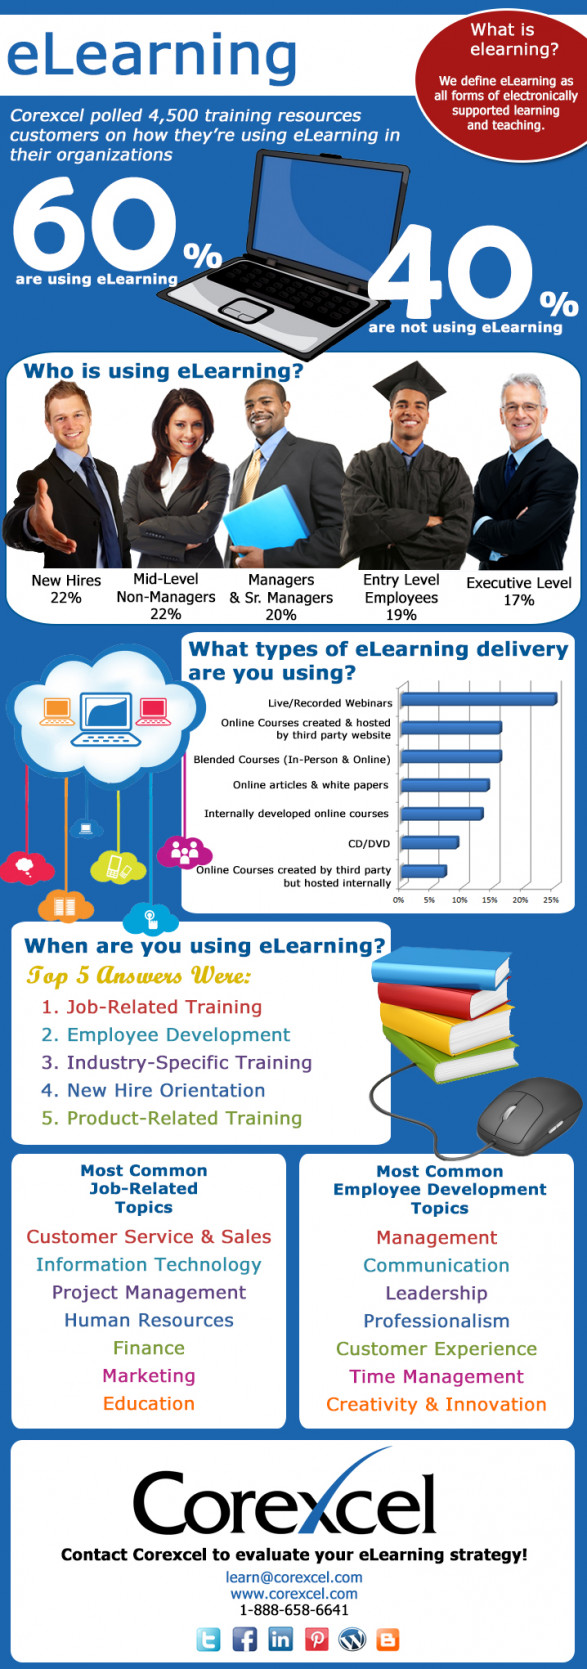 eLearning: Who, What, Where, When and How?